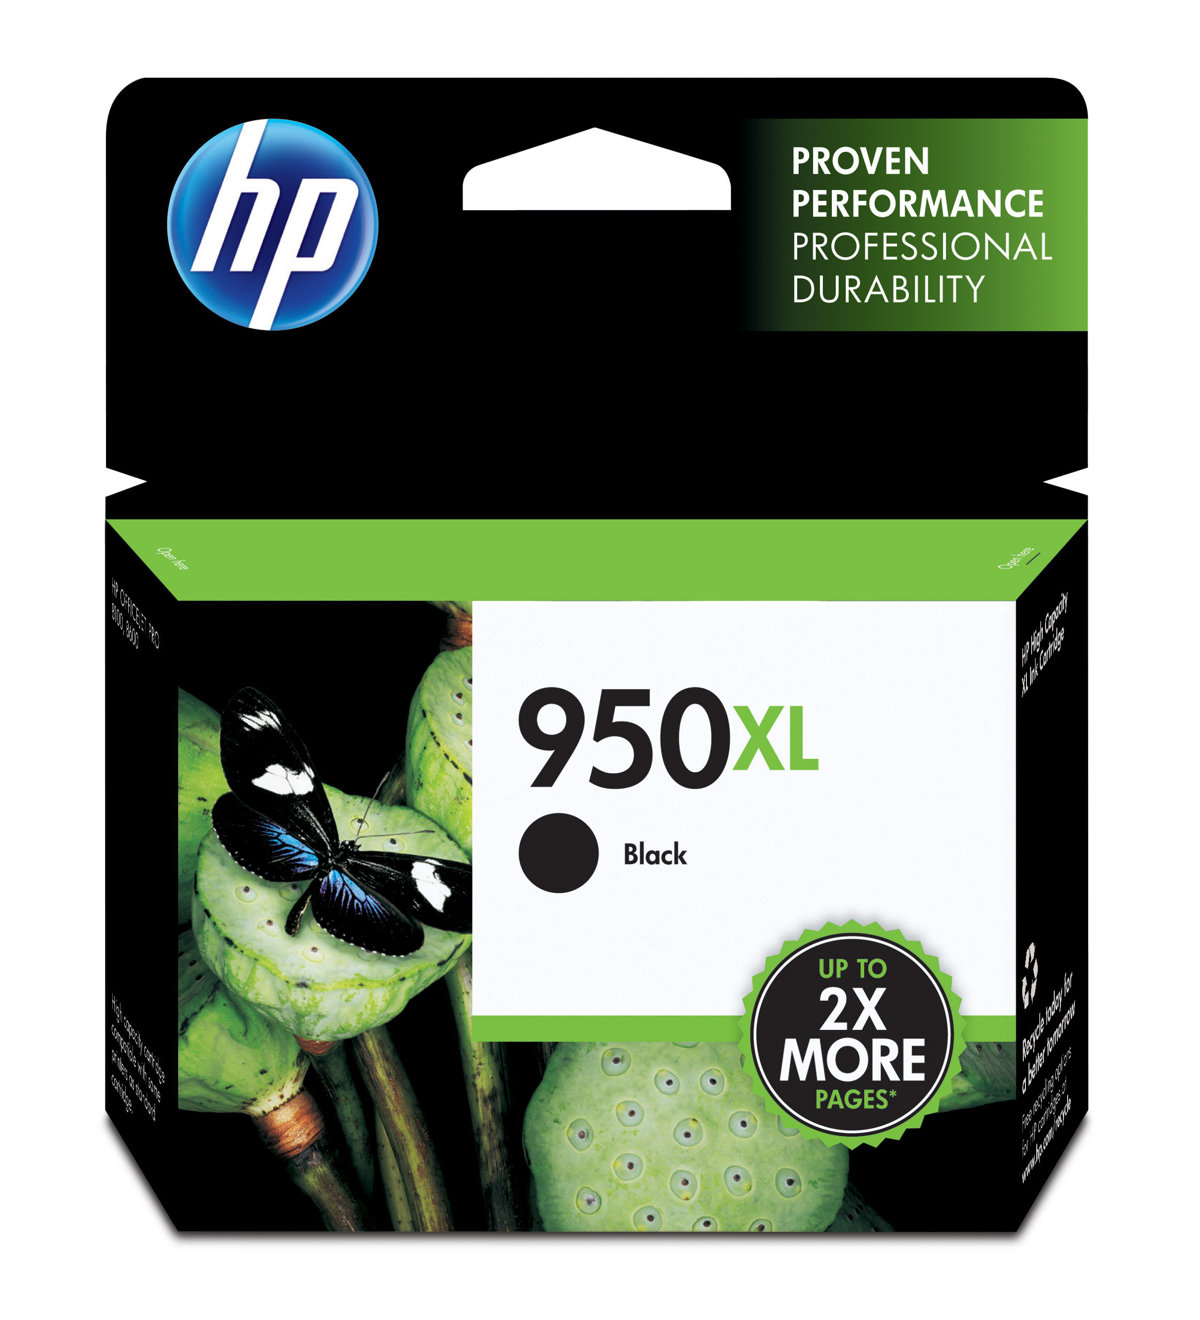 Color printing office depot - Hp 950xl Black High Yield Original